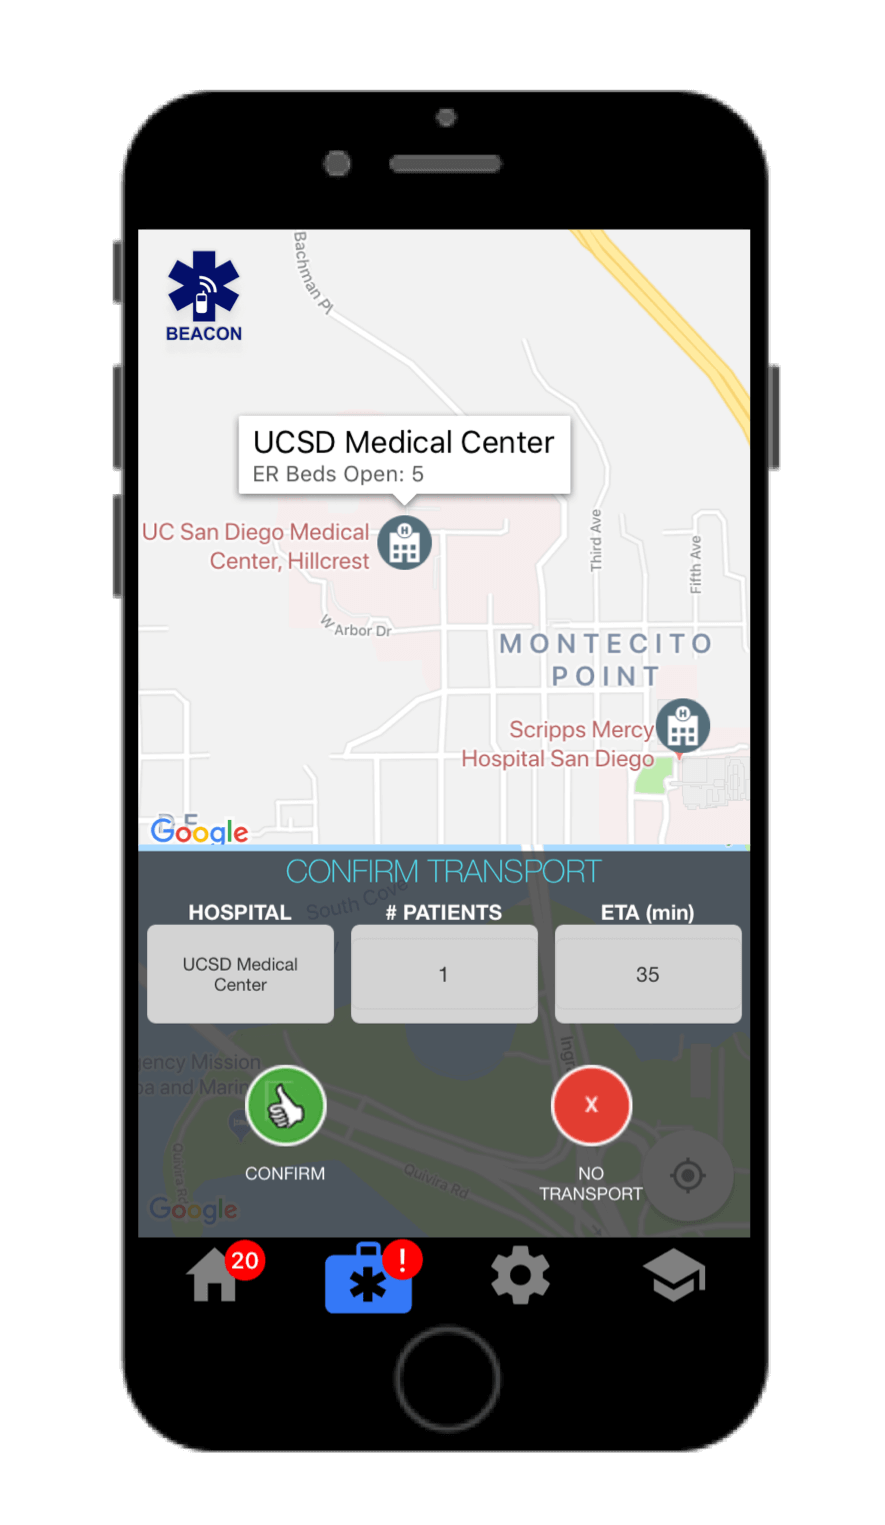 Beacon Emergency Dispatch for iOS - Message 4: Confirm Transport